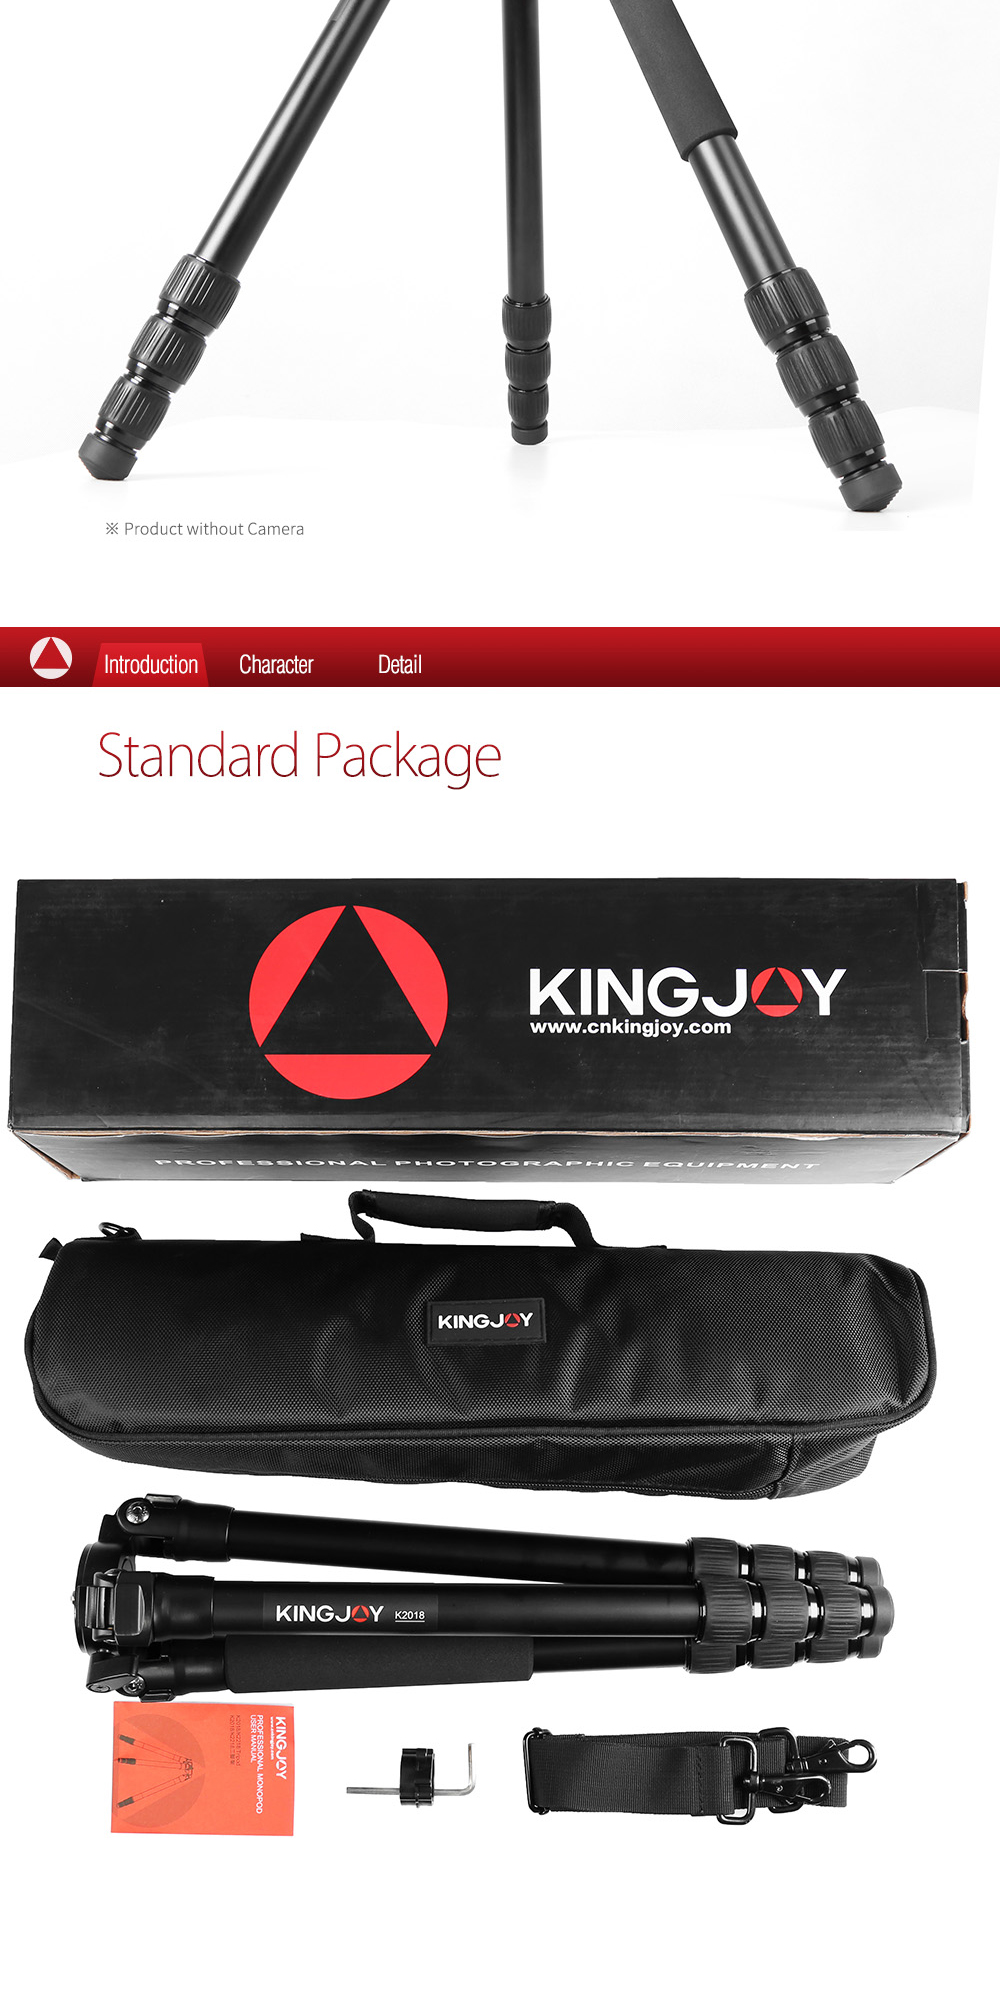 Private label Kingjoy new released 4 section lightweight aluminum professional video camera tripod